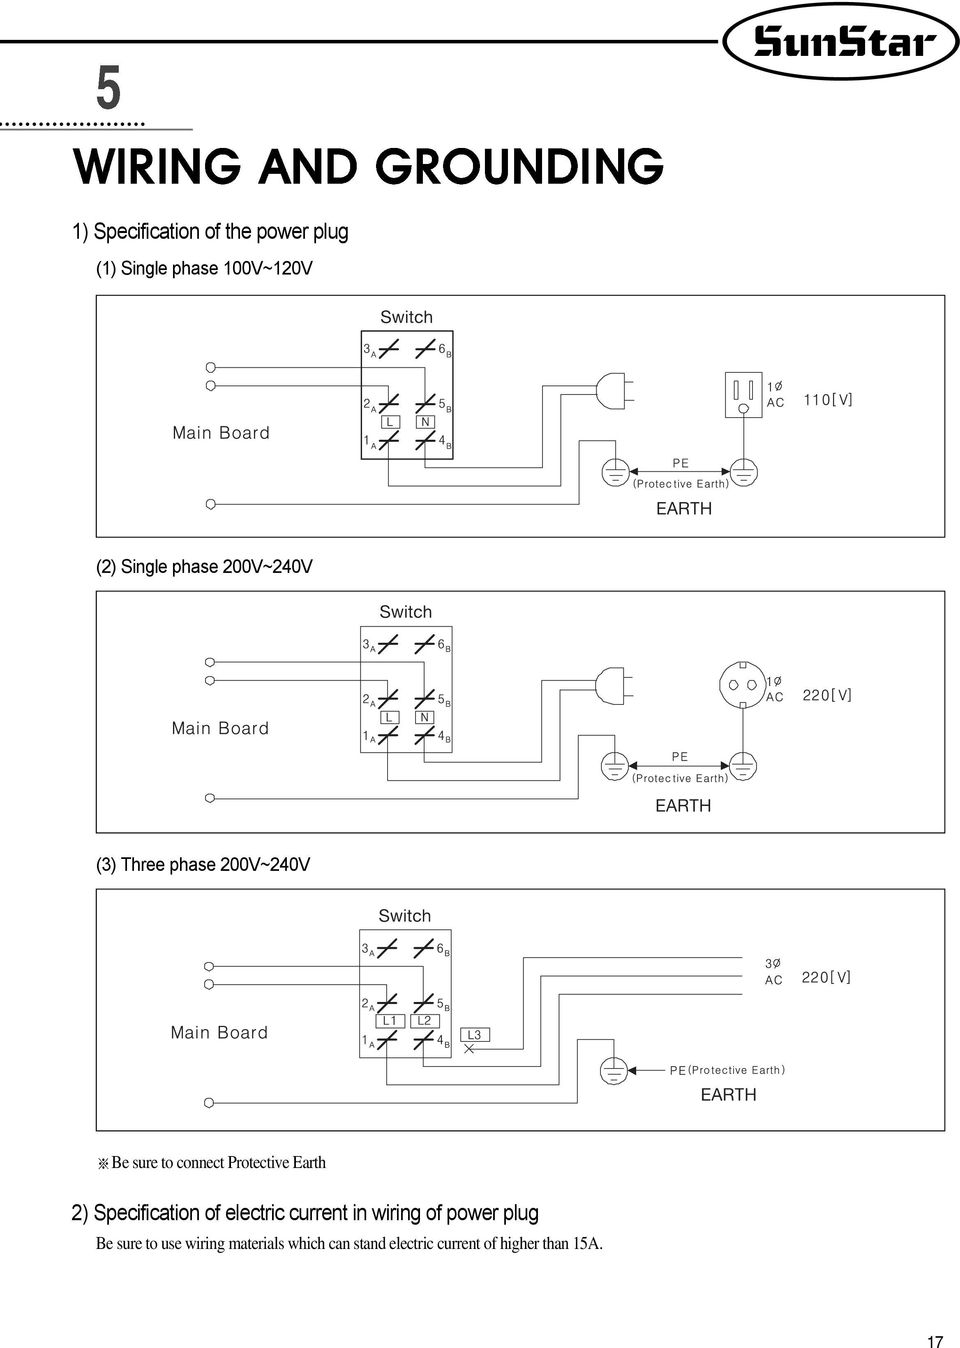 Earth 2) Specification of electric current in wiring of power plug Be sure